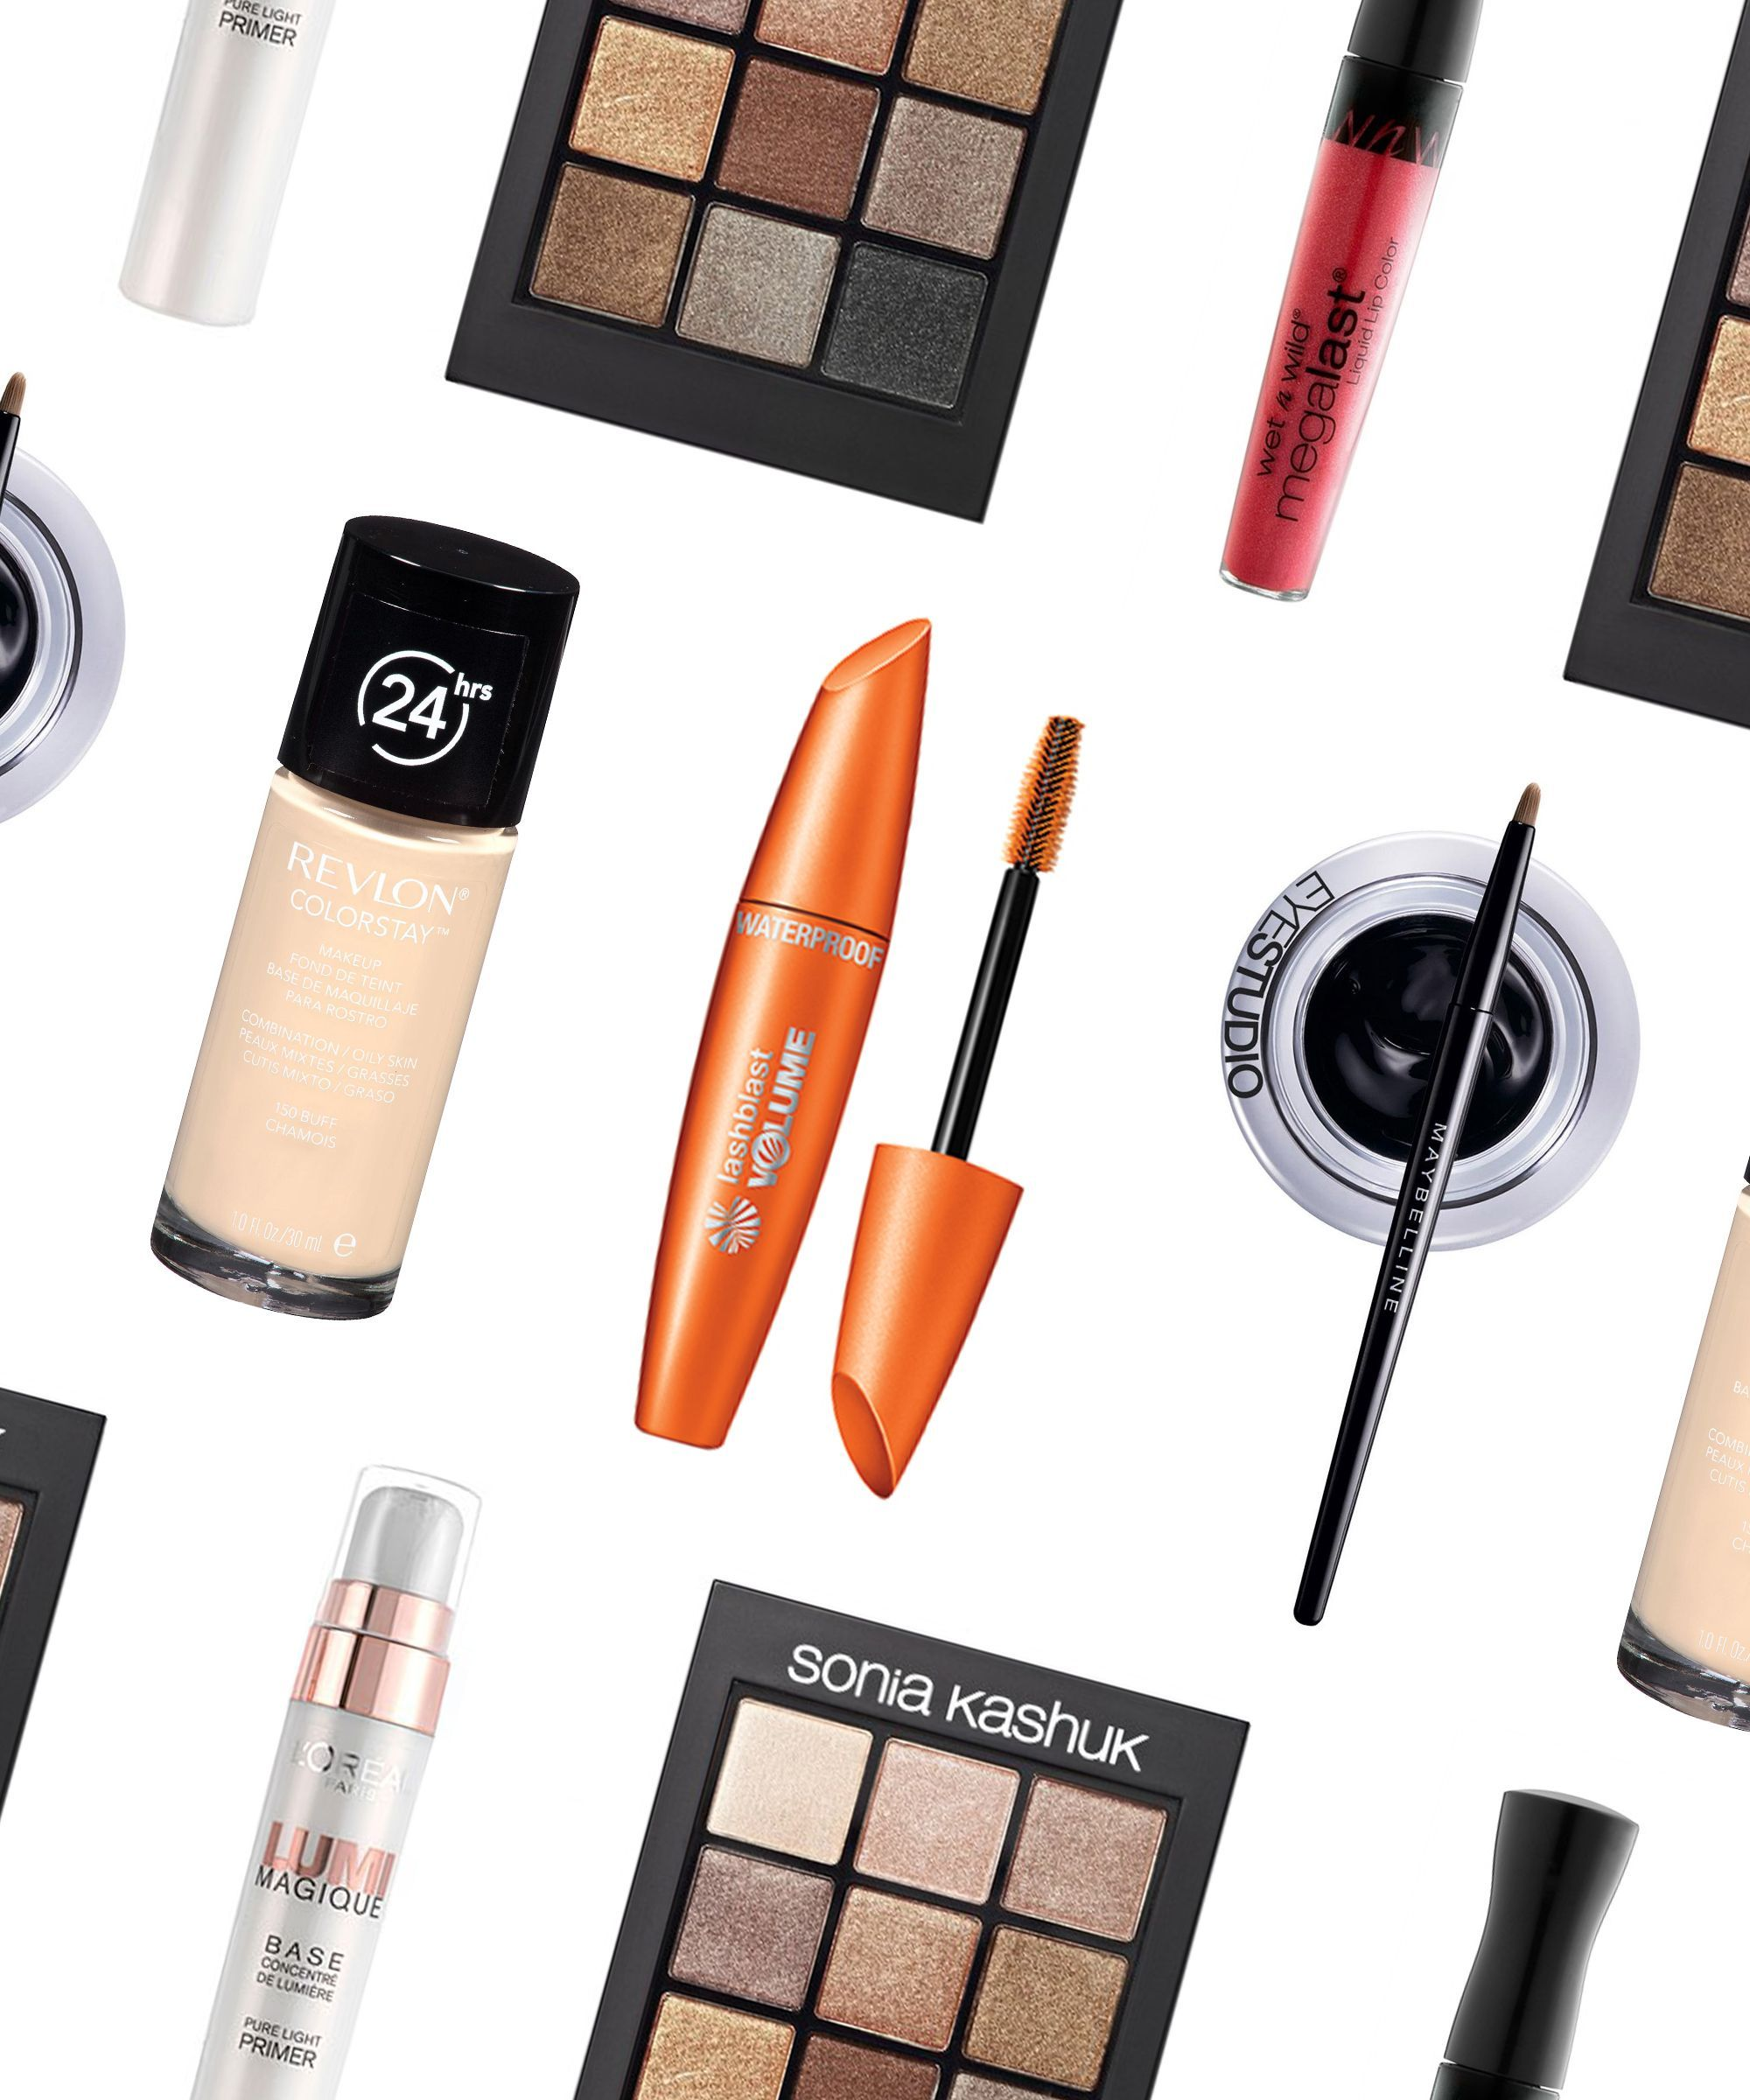 Your Ultimate DrugstoreMakeup Starter Kit Makeup